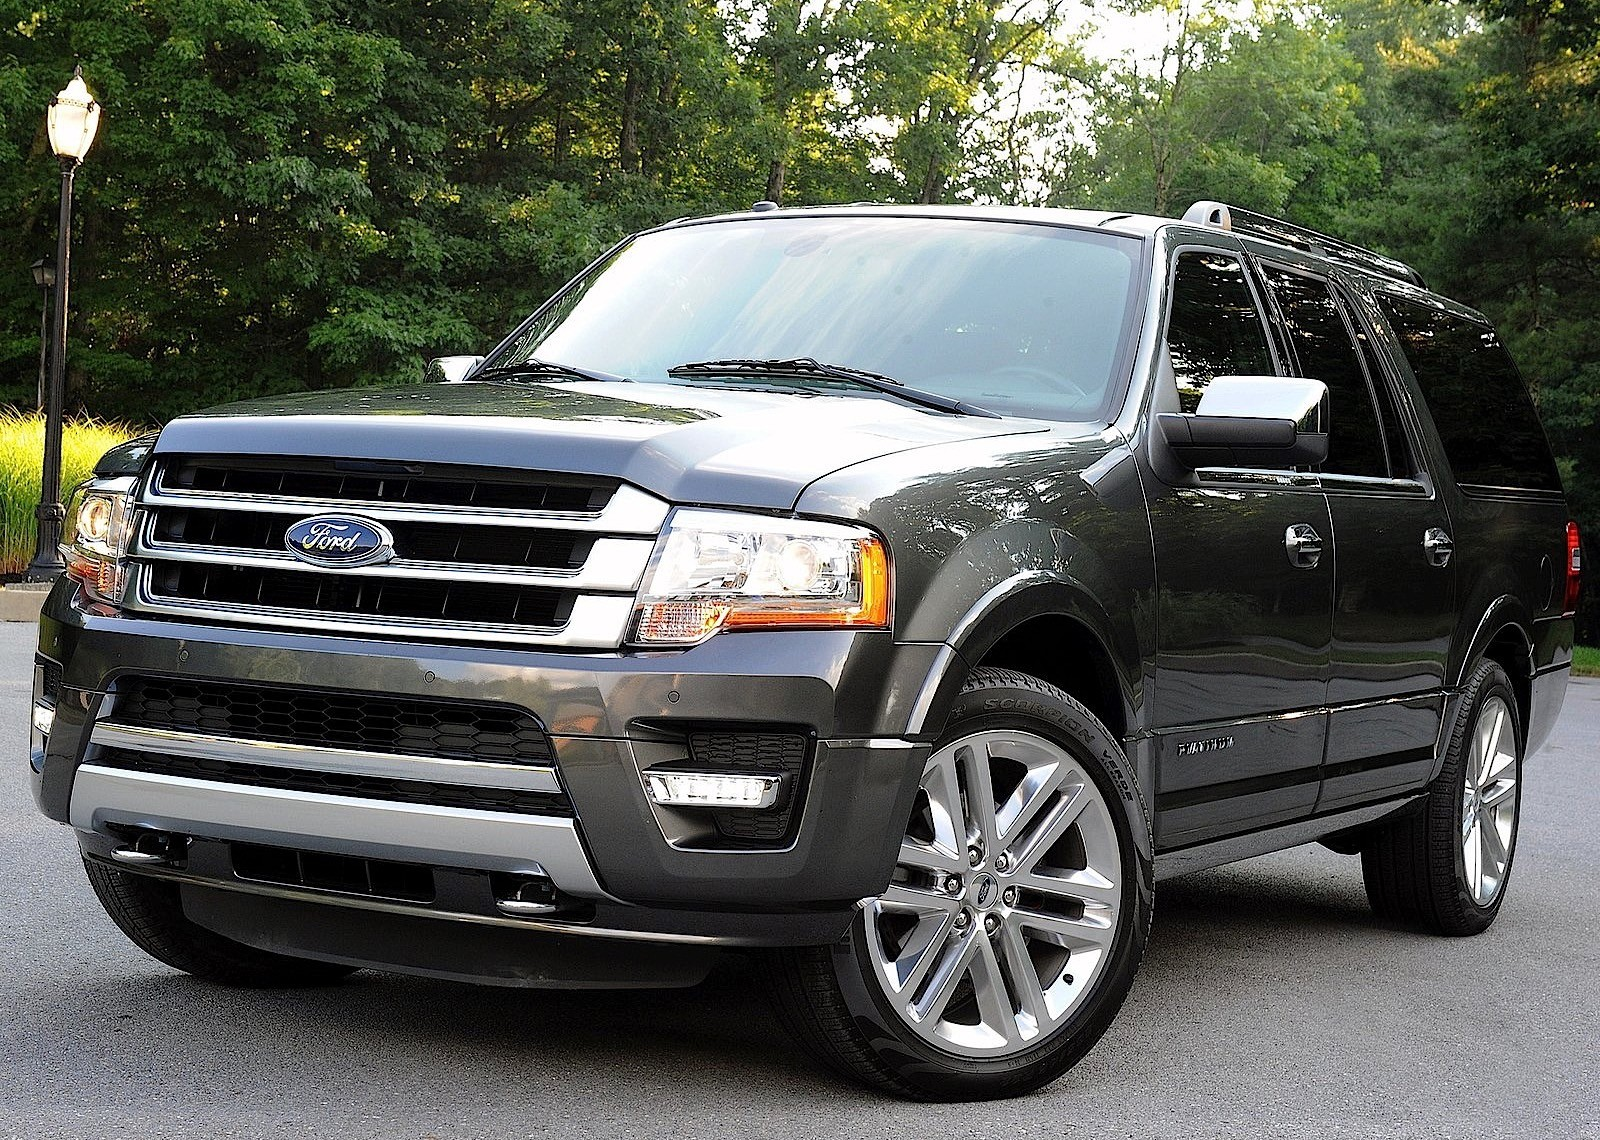 FORD Expedition specs & photos - 2014, 2015, 2016, 2017, 2018, 2019 - autoevolution